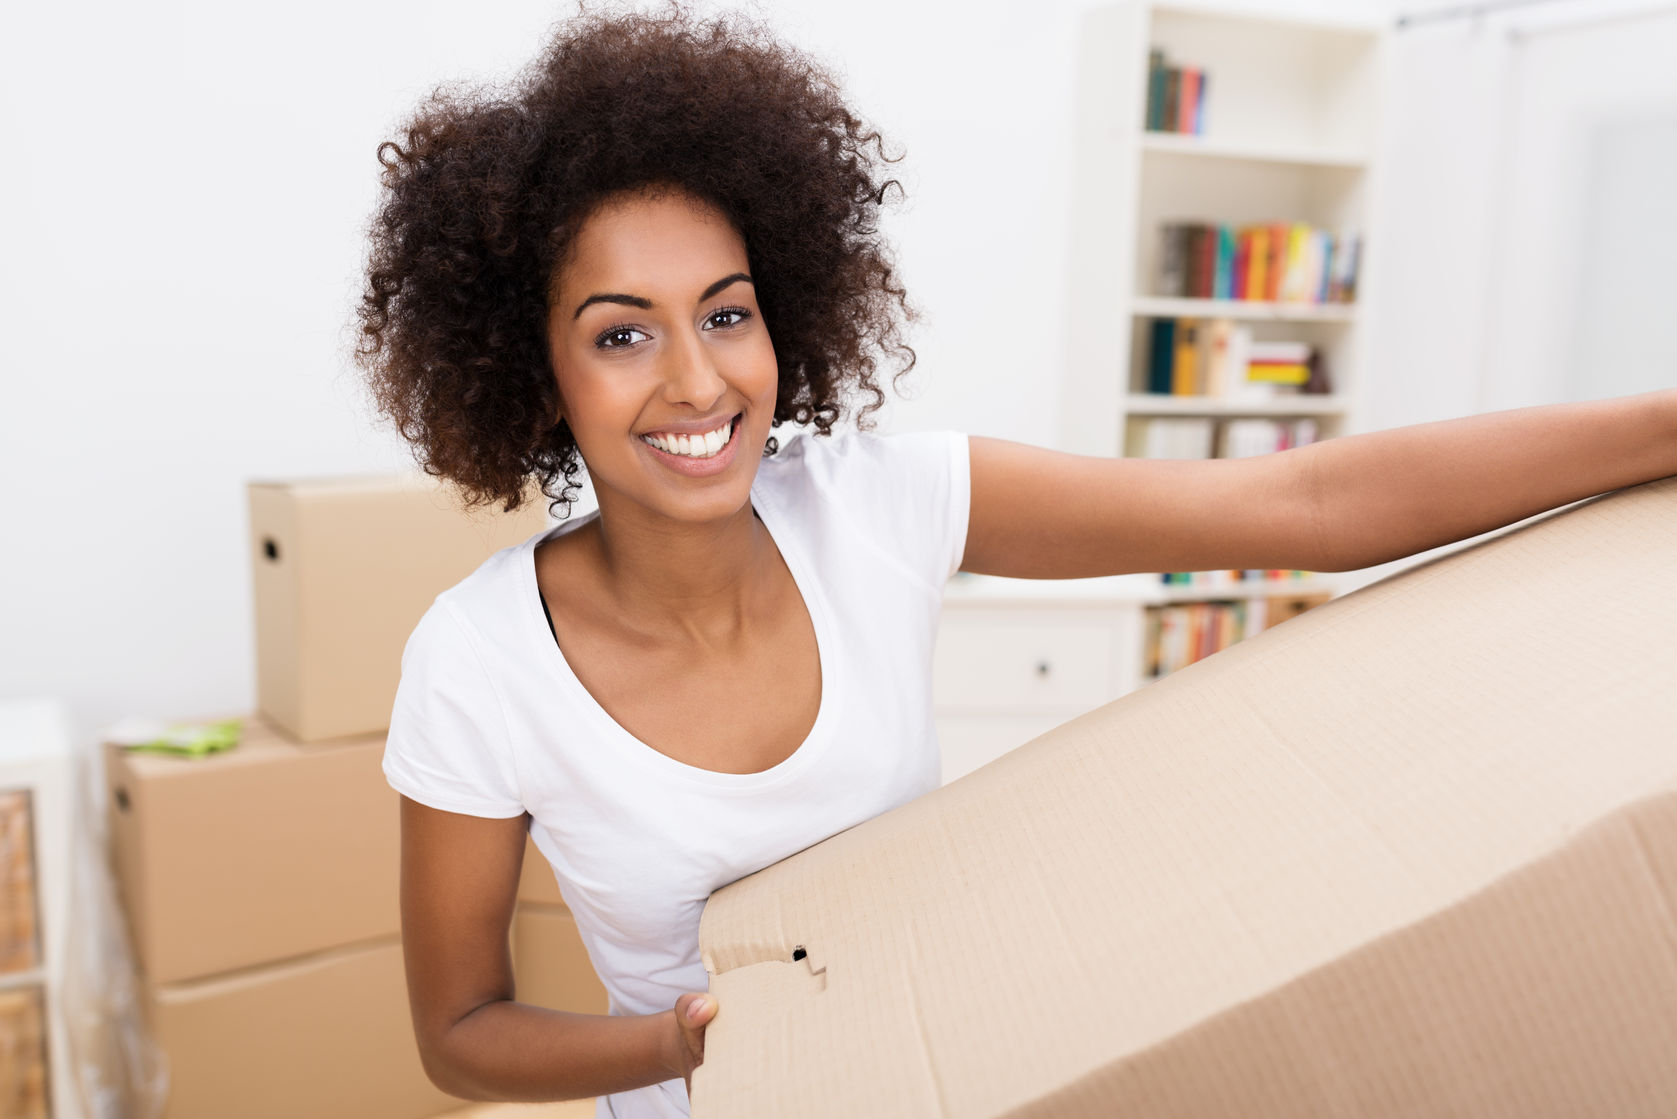 Woman carrying boxes moving house